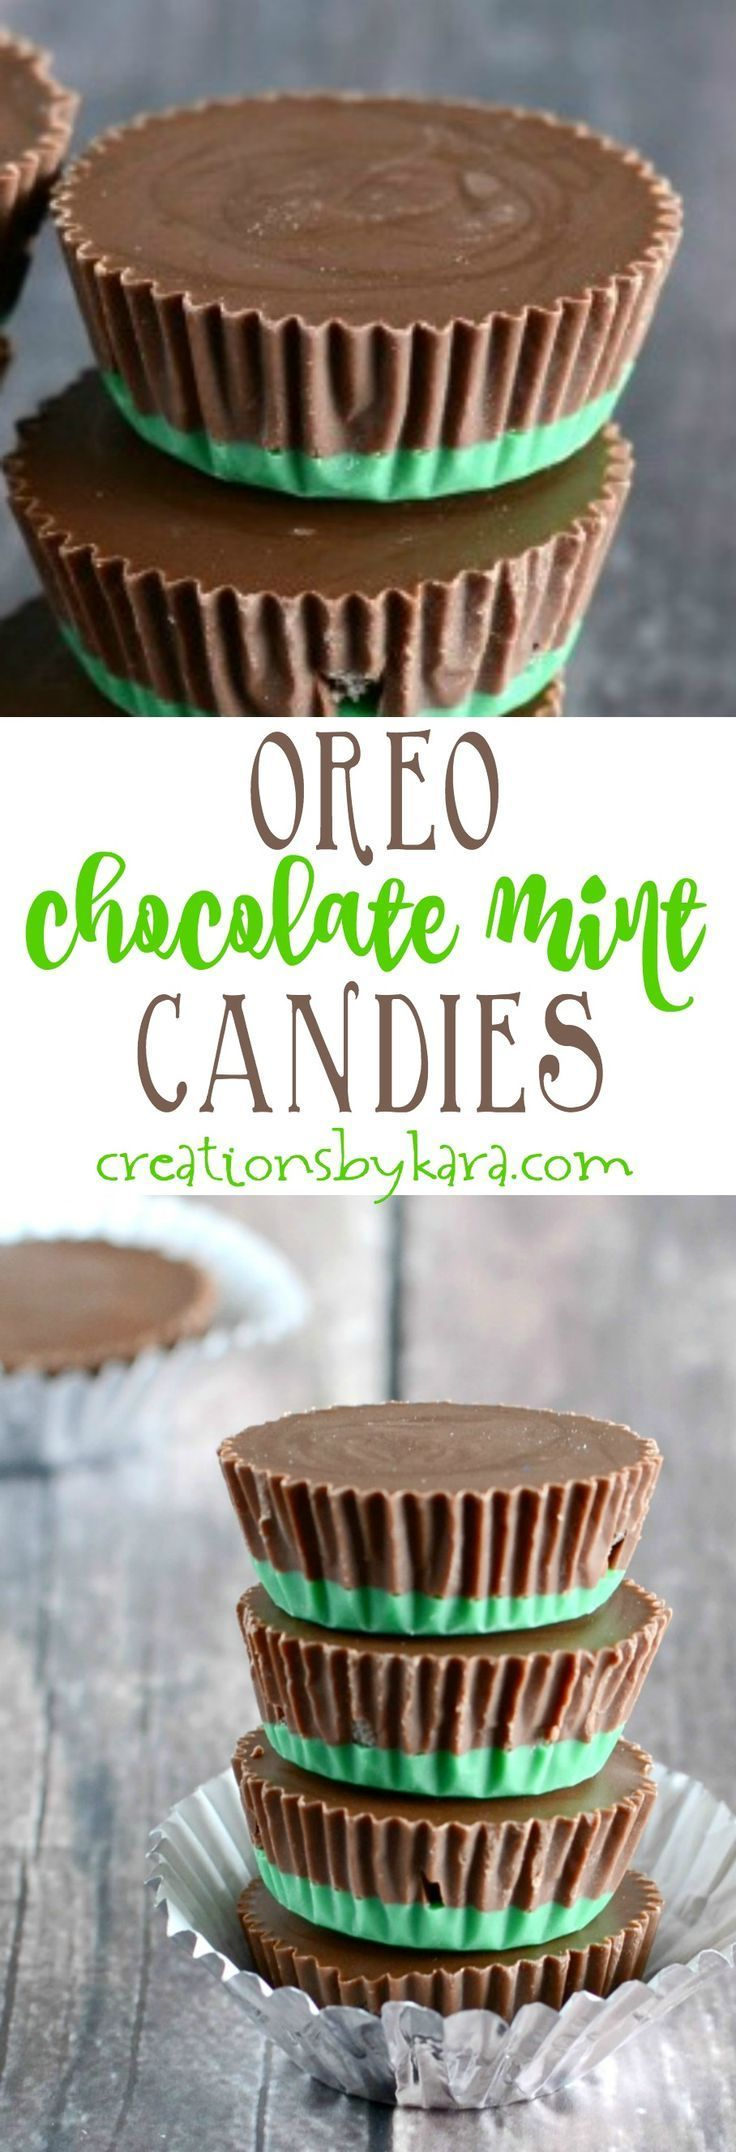 With just four ingredients, these Chocolate Mint Candies are a cinch to whip up. A perfect candy recipe for Christmas gift giving! #Christmascandy #chocolatemint